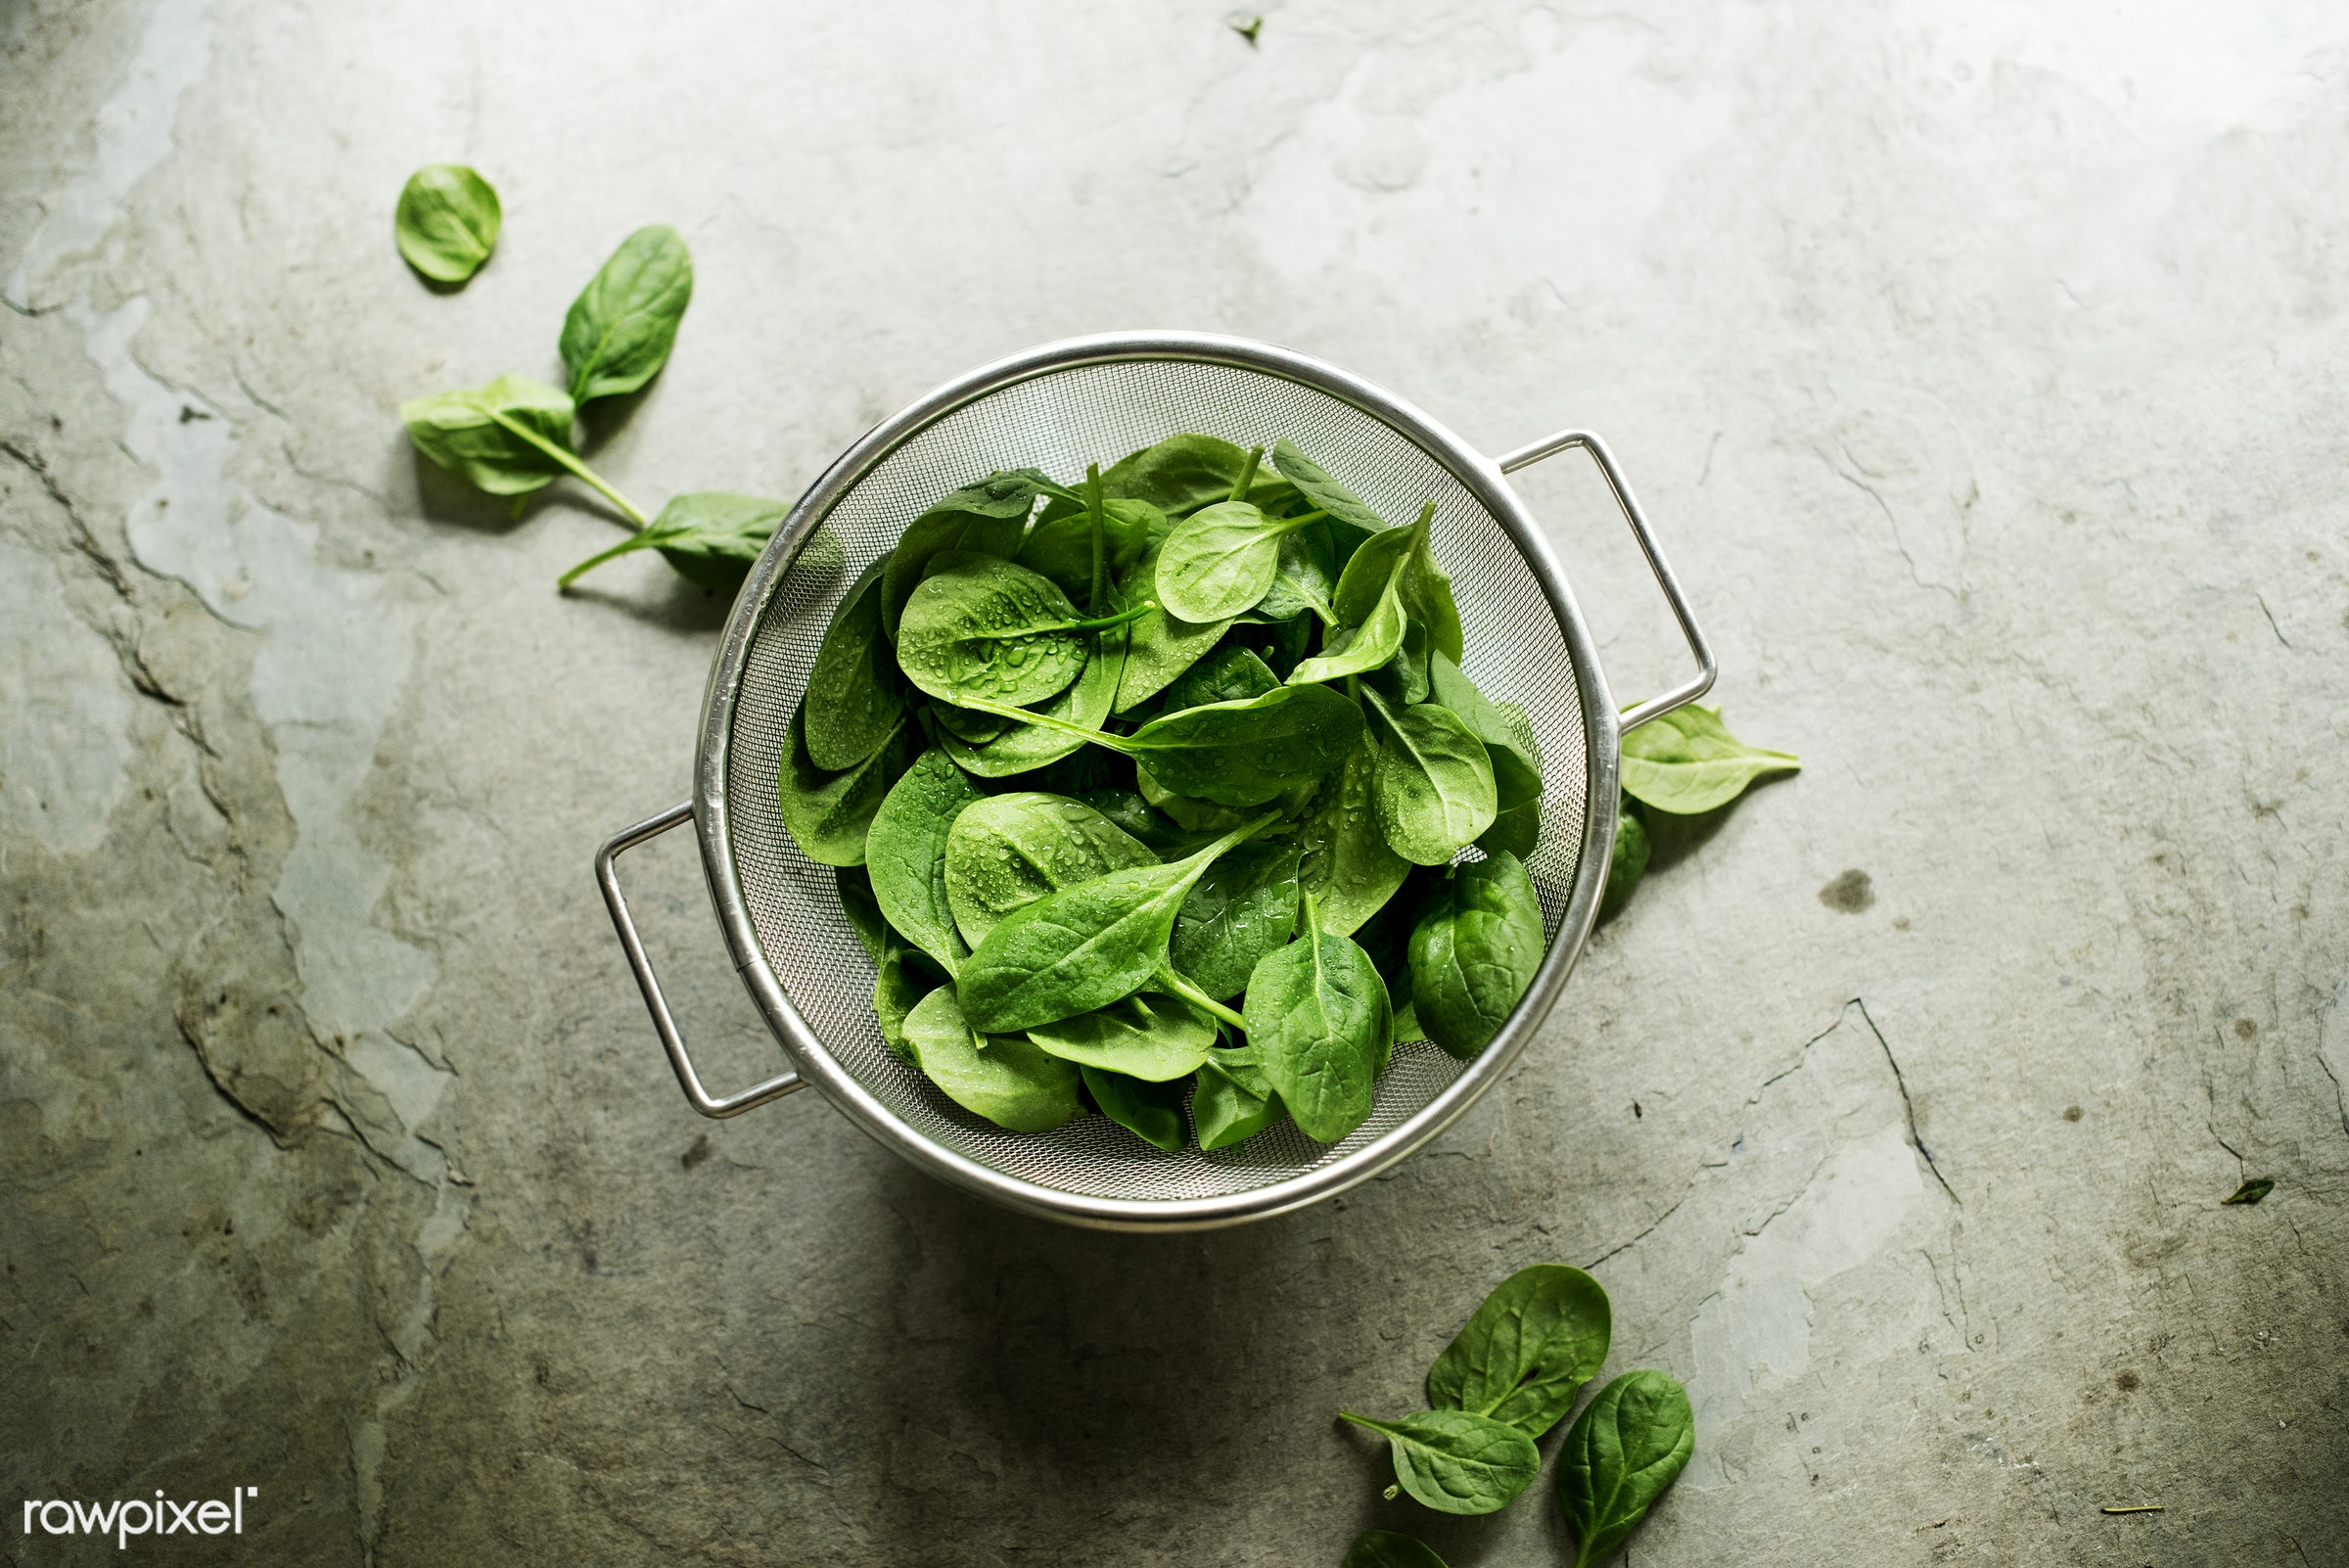 raw, plant, nobody, bowl, sieve, leaves, real, organic, nature, fresh, food, background, spinach, ingredient, vegetable,...